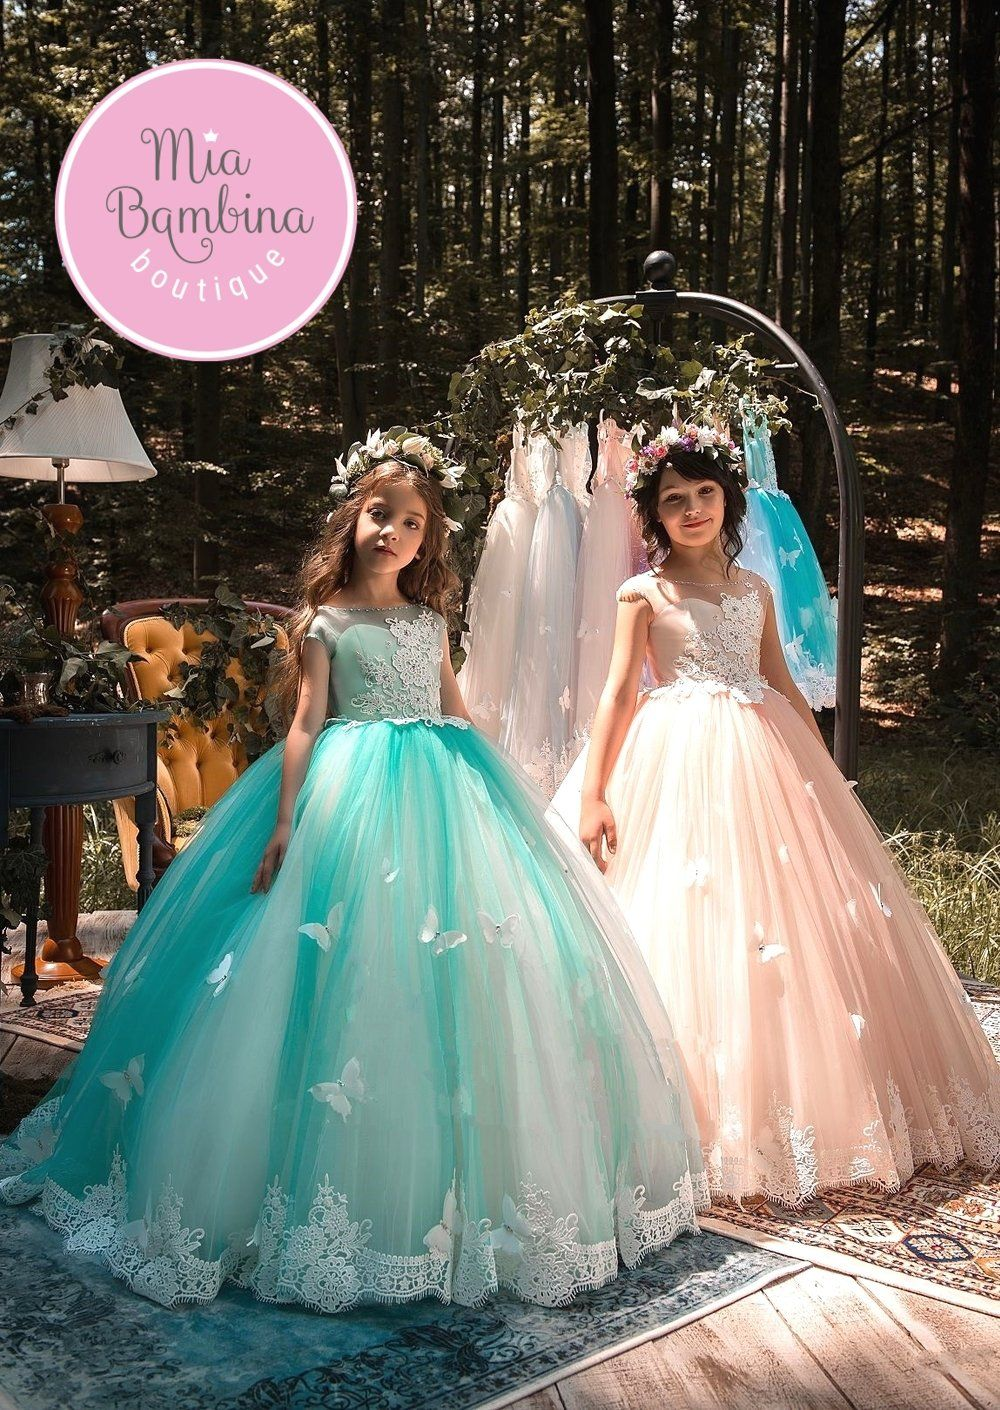 Savona | Beaded embroidery, Girls dresses and Delicate